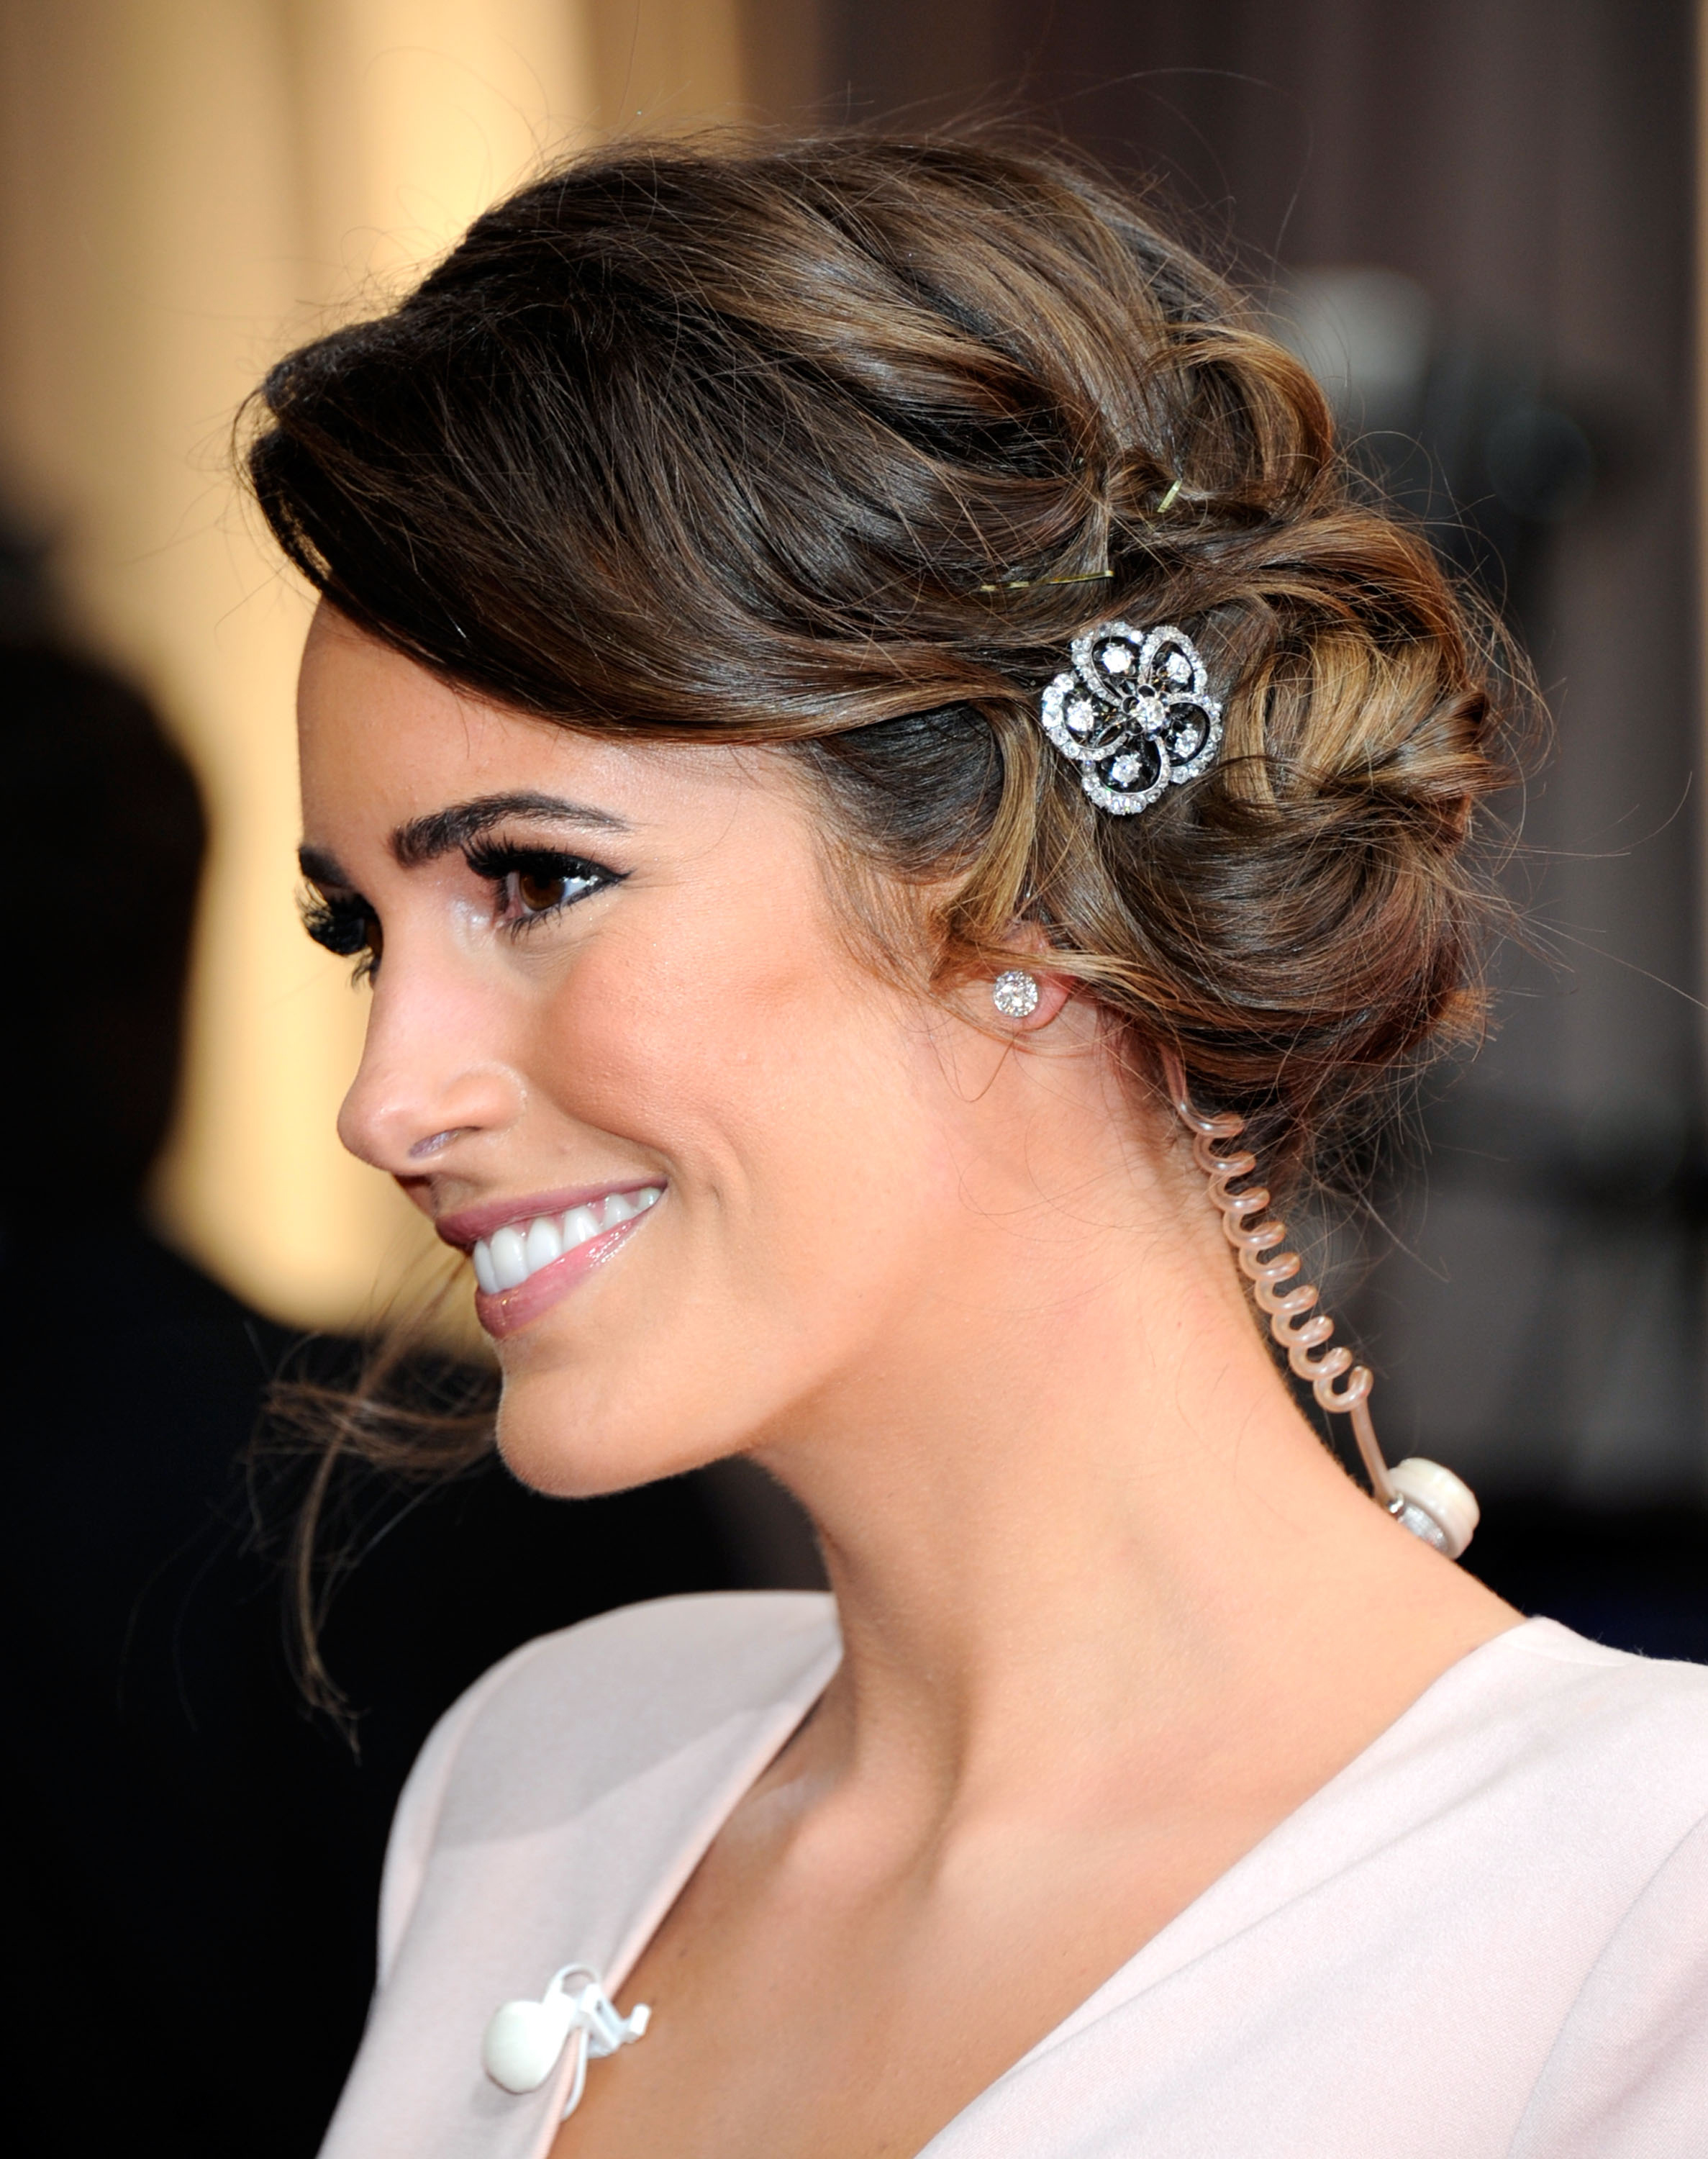 Sparkle Headbands and Barrettes, New 2013 Winter Hair Trends